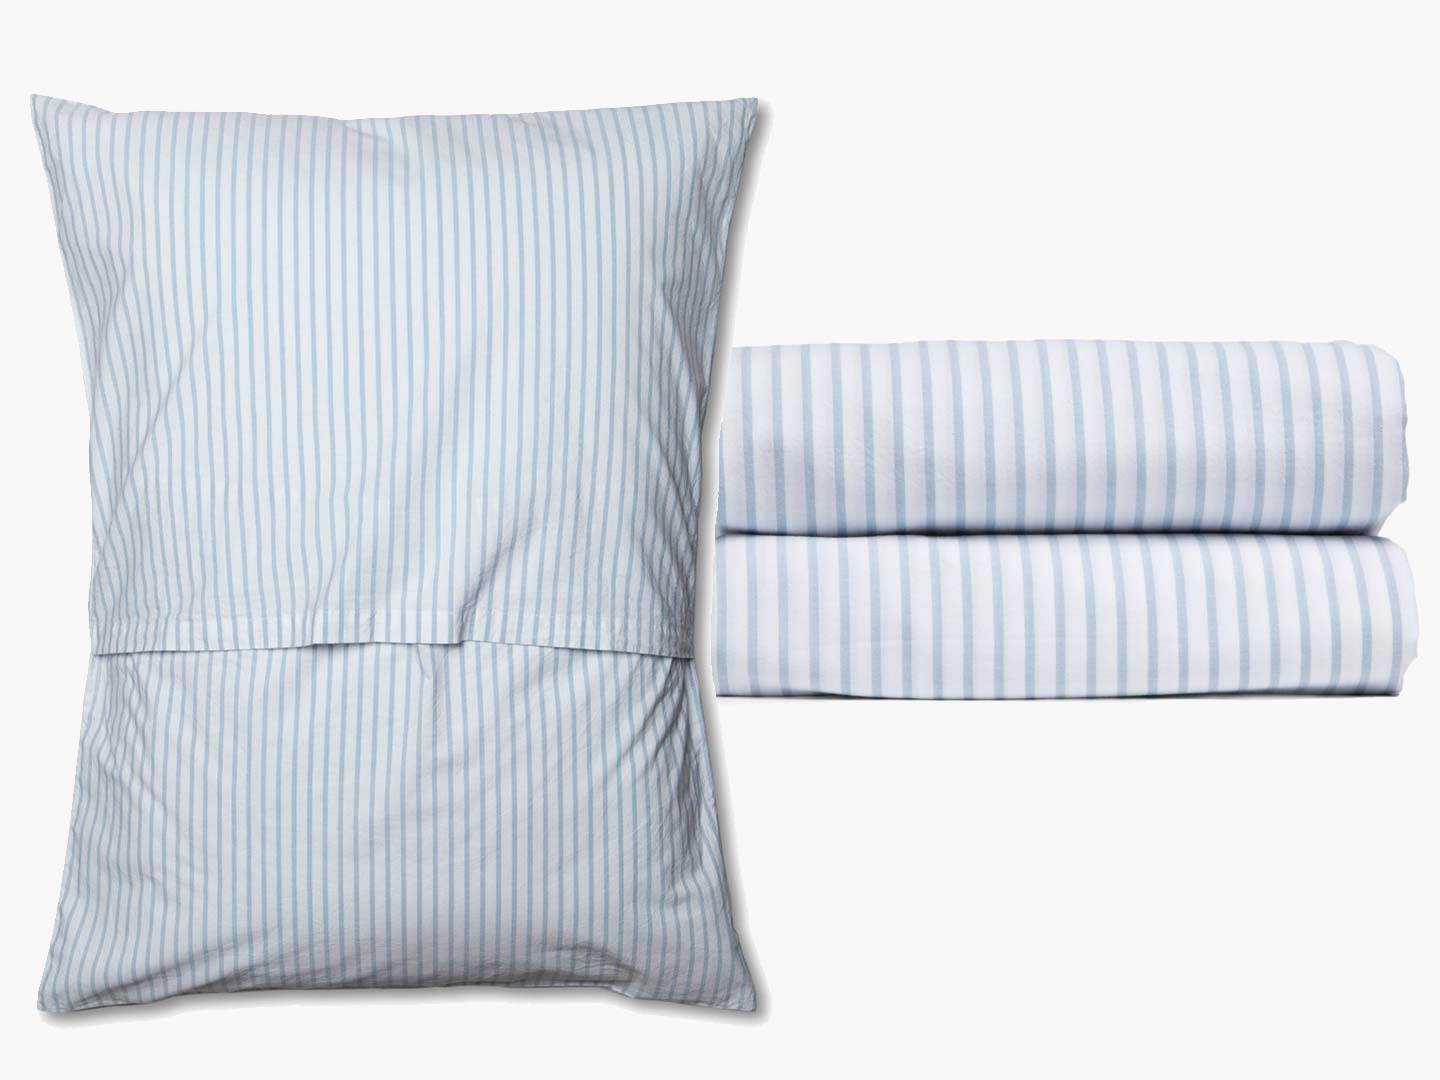 STRIPED PERCALE SHEETS & PILLOW CASES  AVAILABLE IN 3 COLORS. BLUE, GREY AND TAUPE